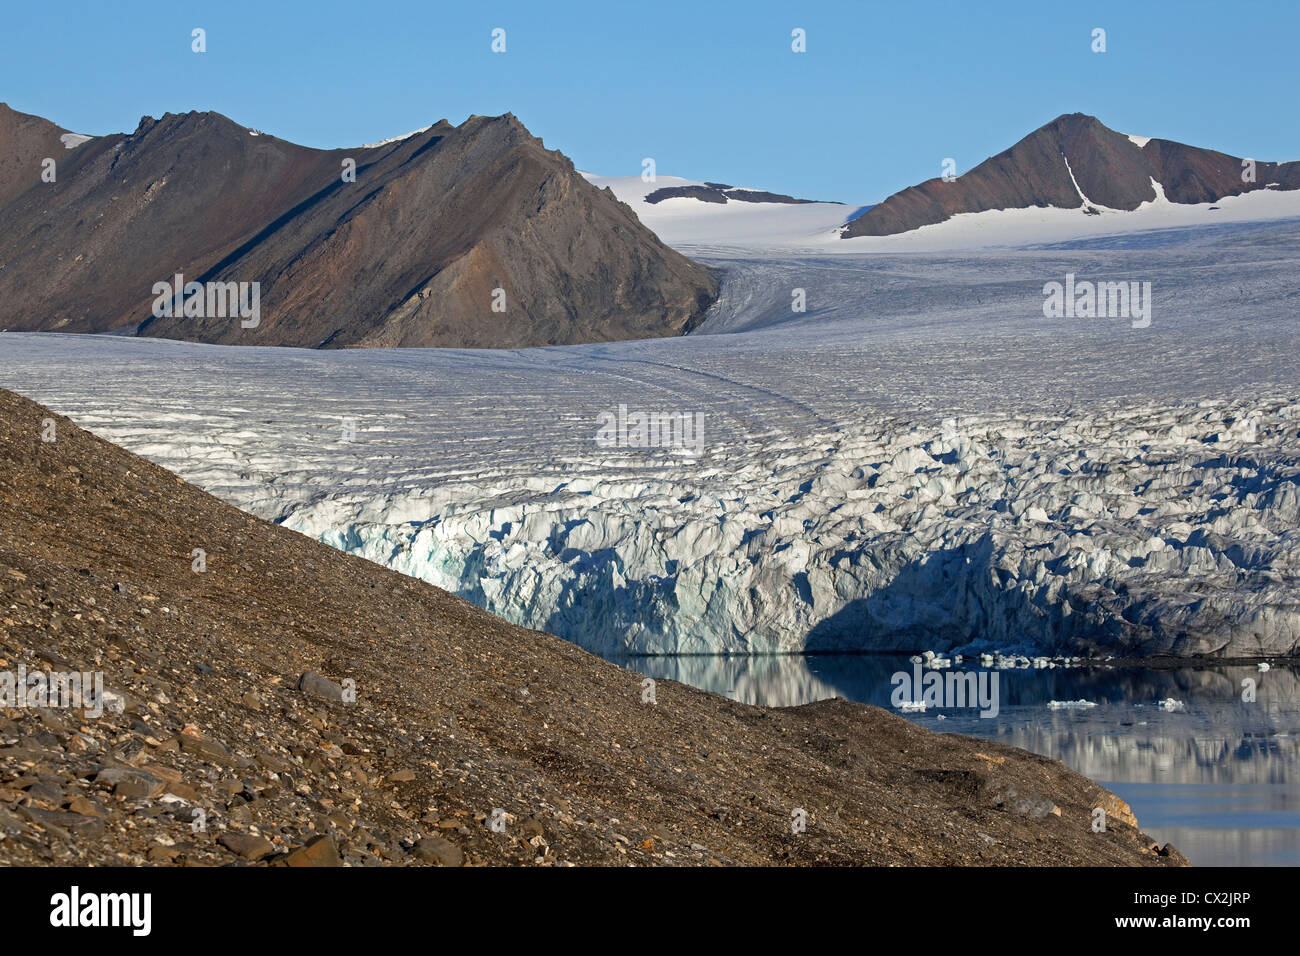 Arctic glacier and mountains at Svalbard, Spitsbergen, Norway - Stock Image